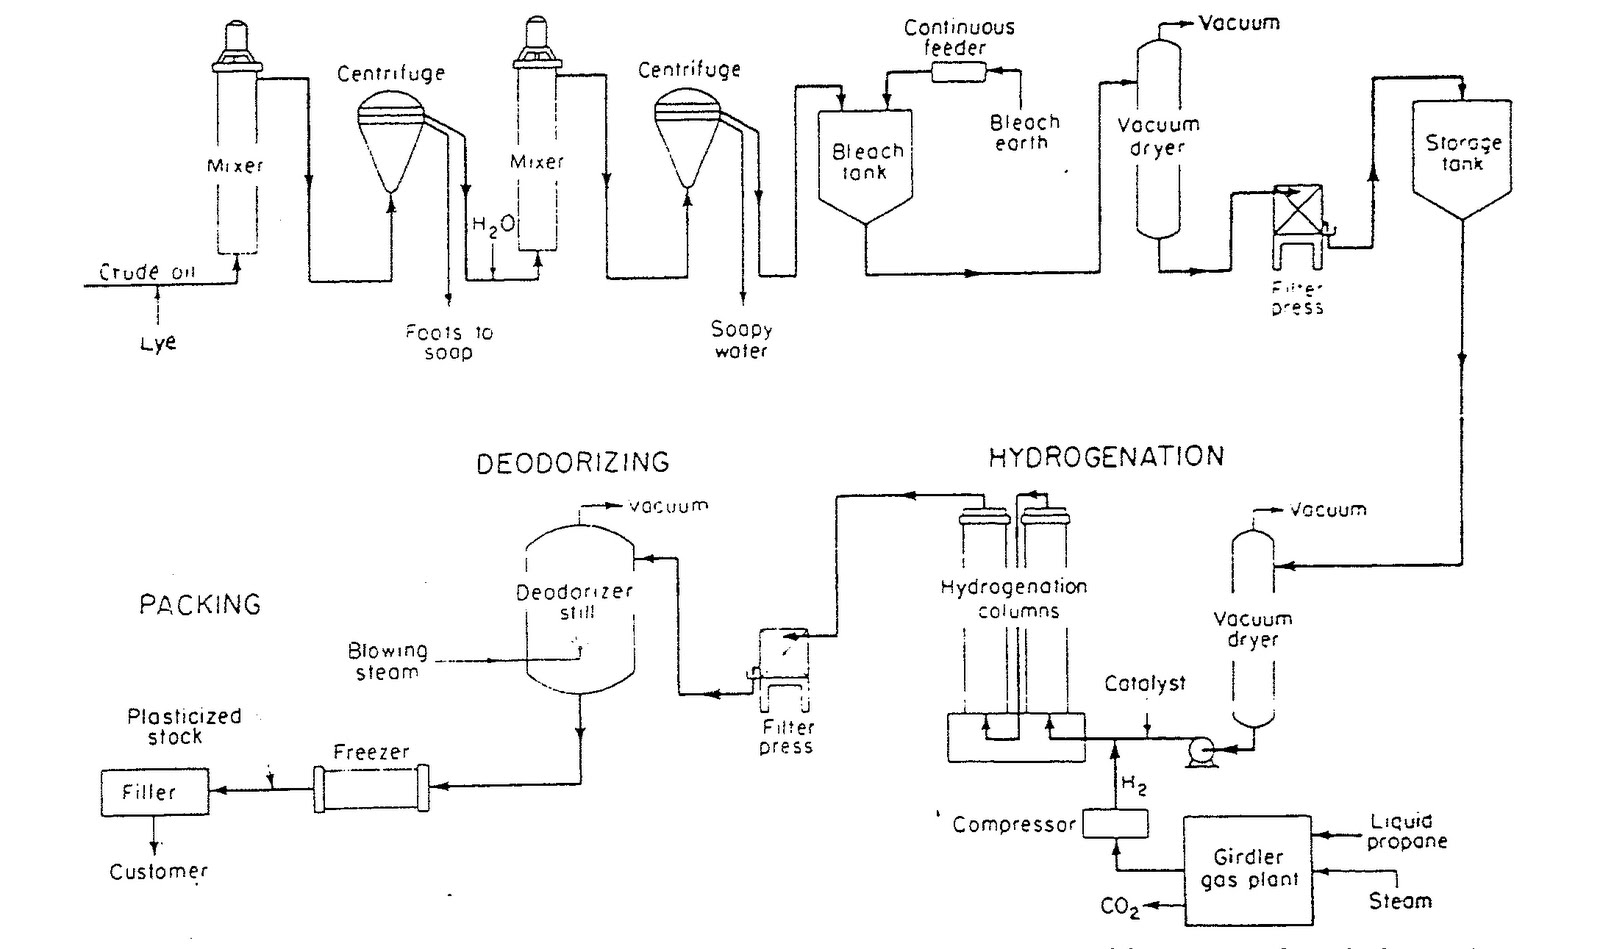 Process flow sheets vegetable oil and fats production process source shreves chemical process industries nvjuhfo Images